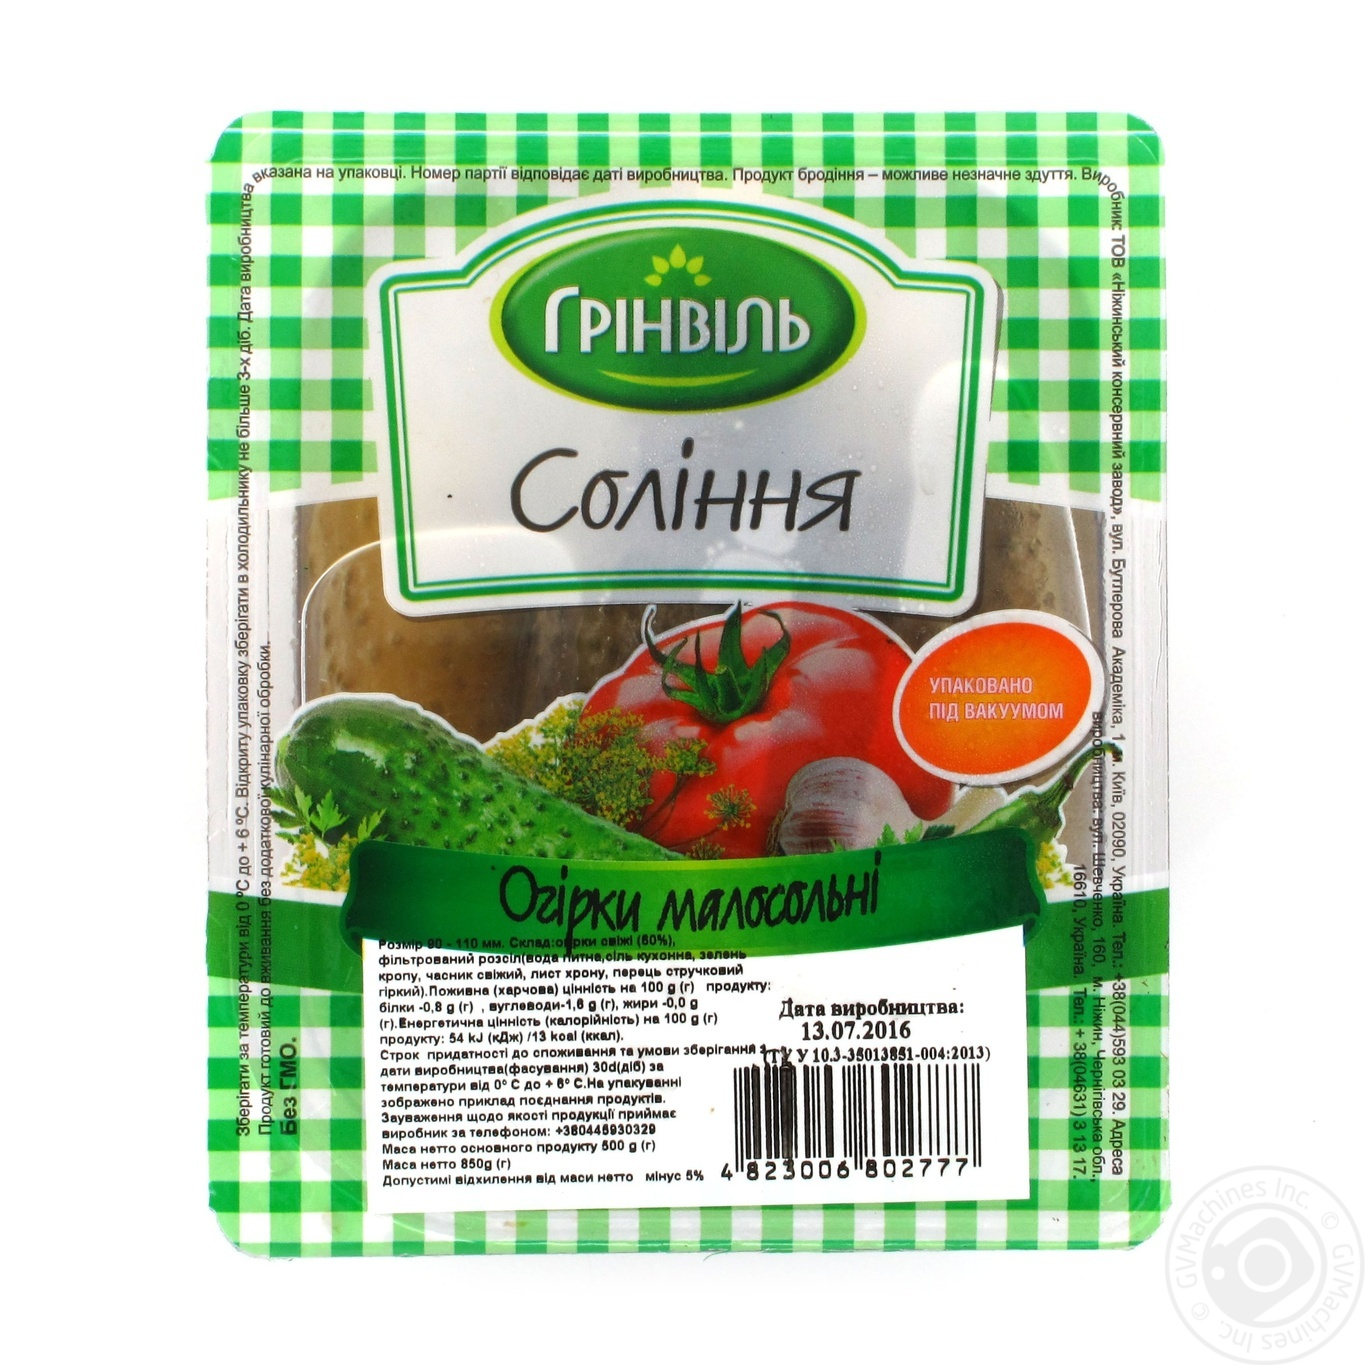 Greenvil slightly salted cucumber 500g → Canned food and